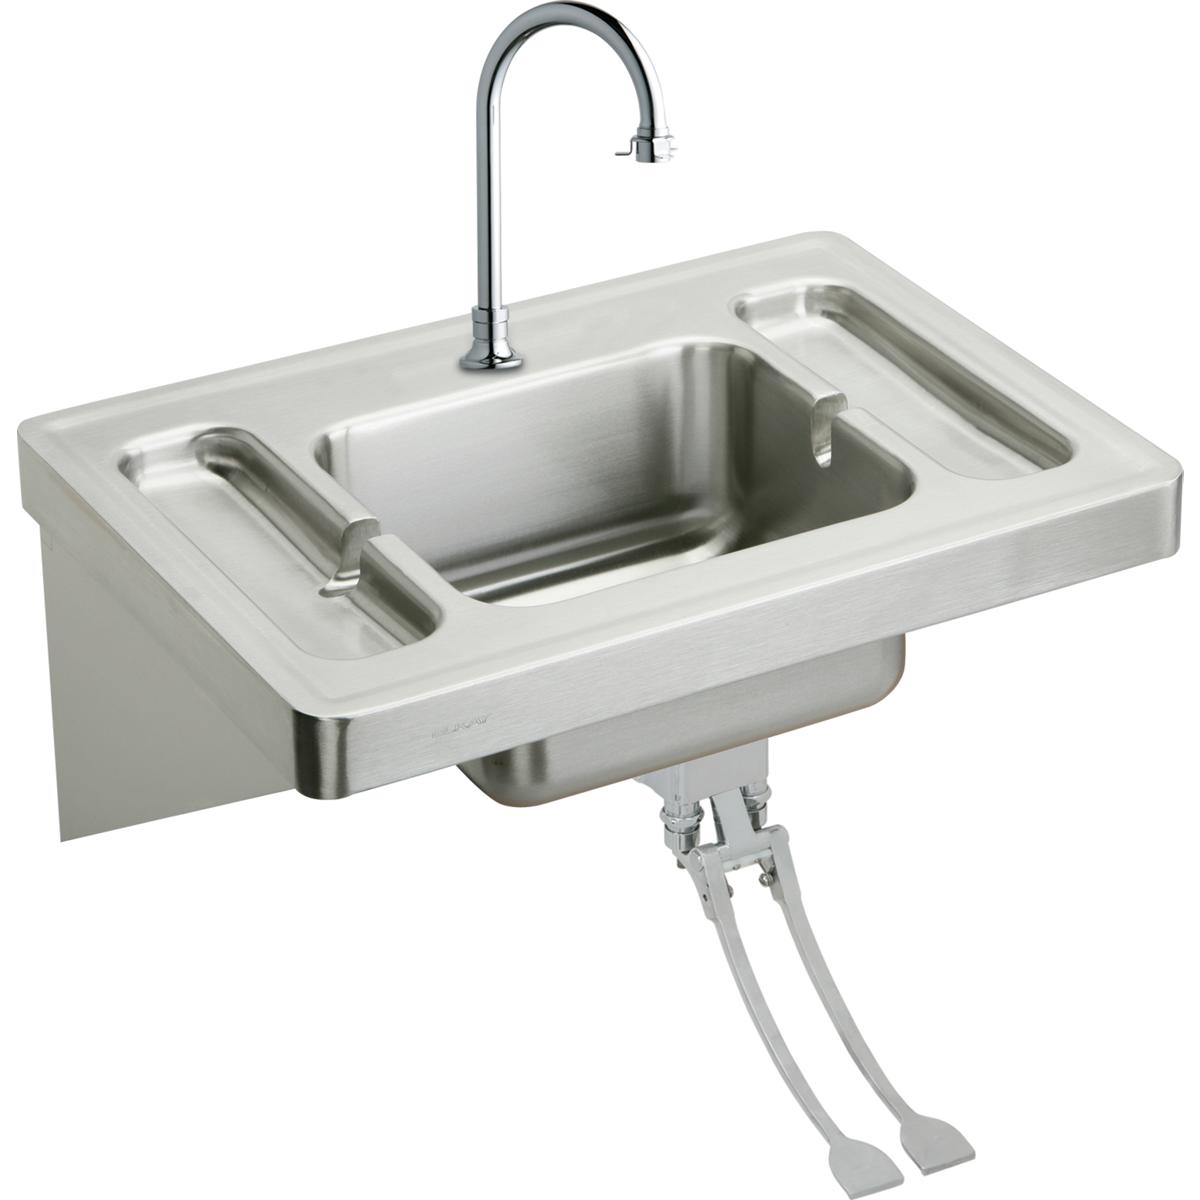 Elkay Eslv2820fc Wall Mount 16 Gauge Stainless Steel Surgeons Bathroom Sink With Spout Foot Valve A